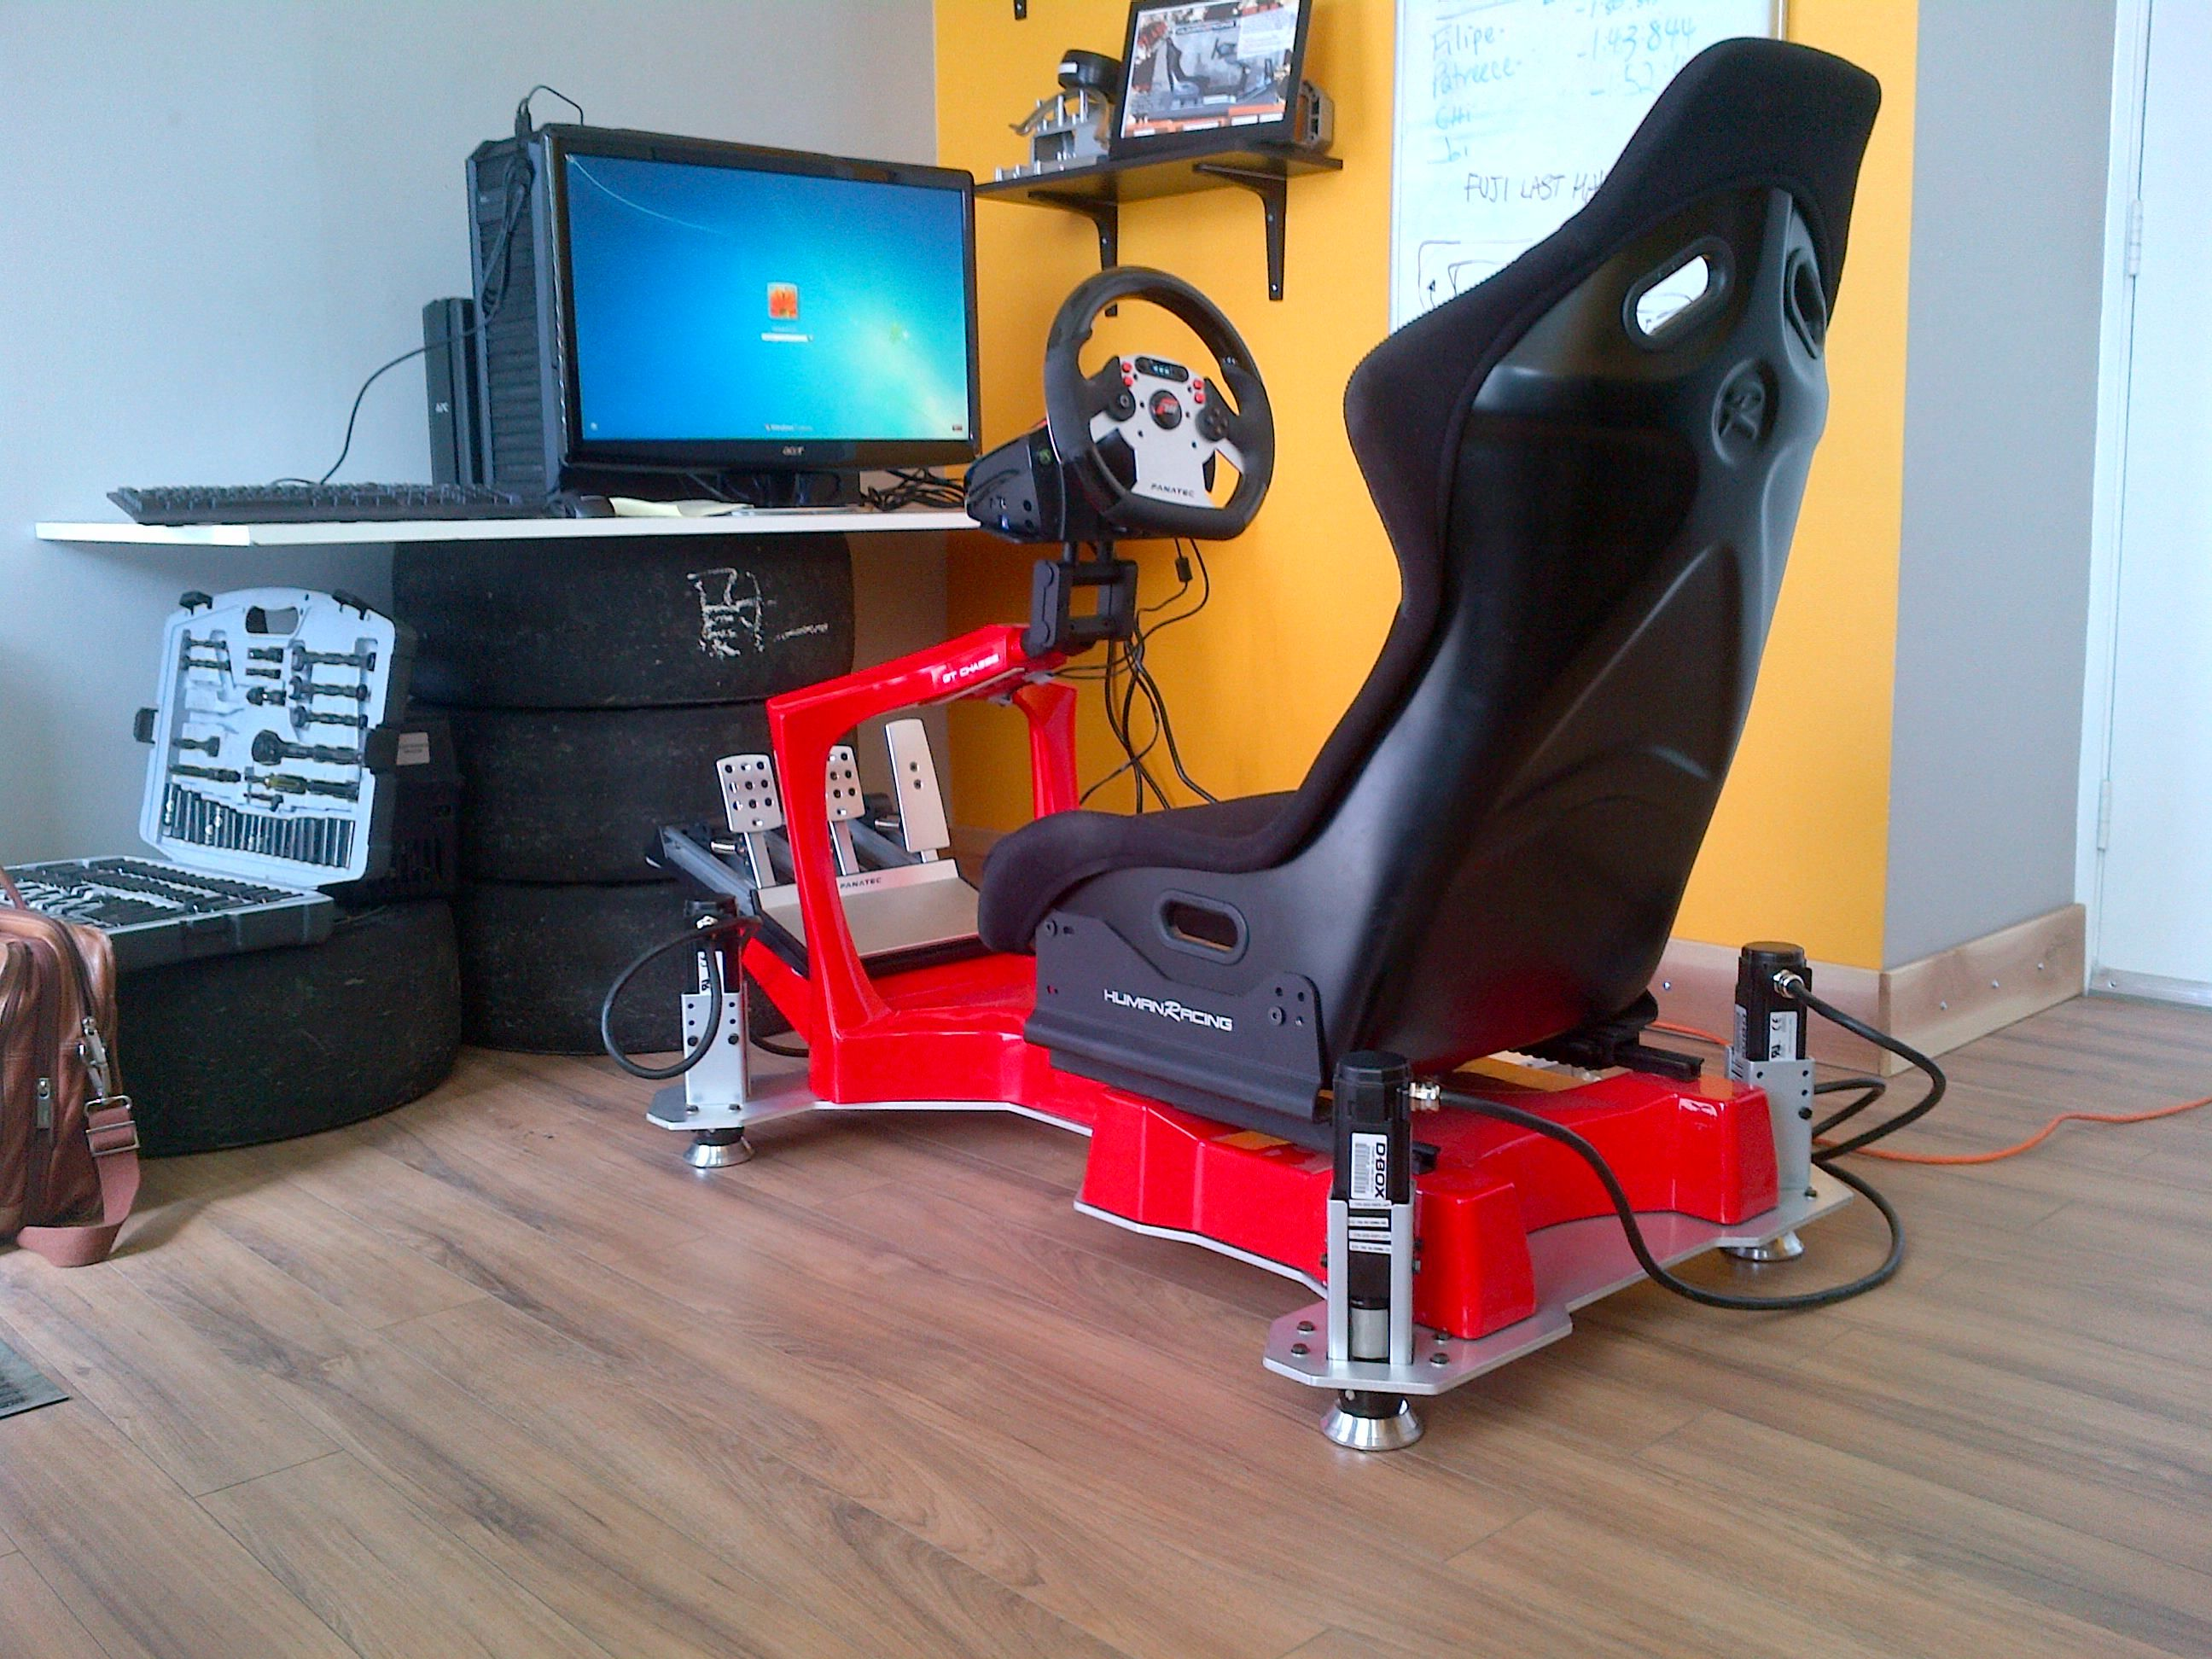 Human Racing Gt Chassis In Red With D Box 3 Dof Motion